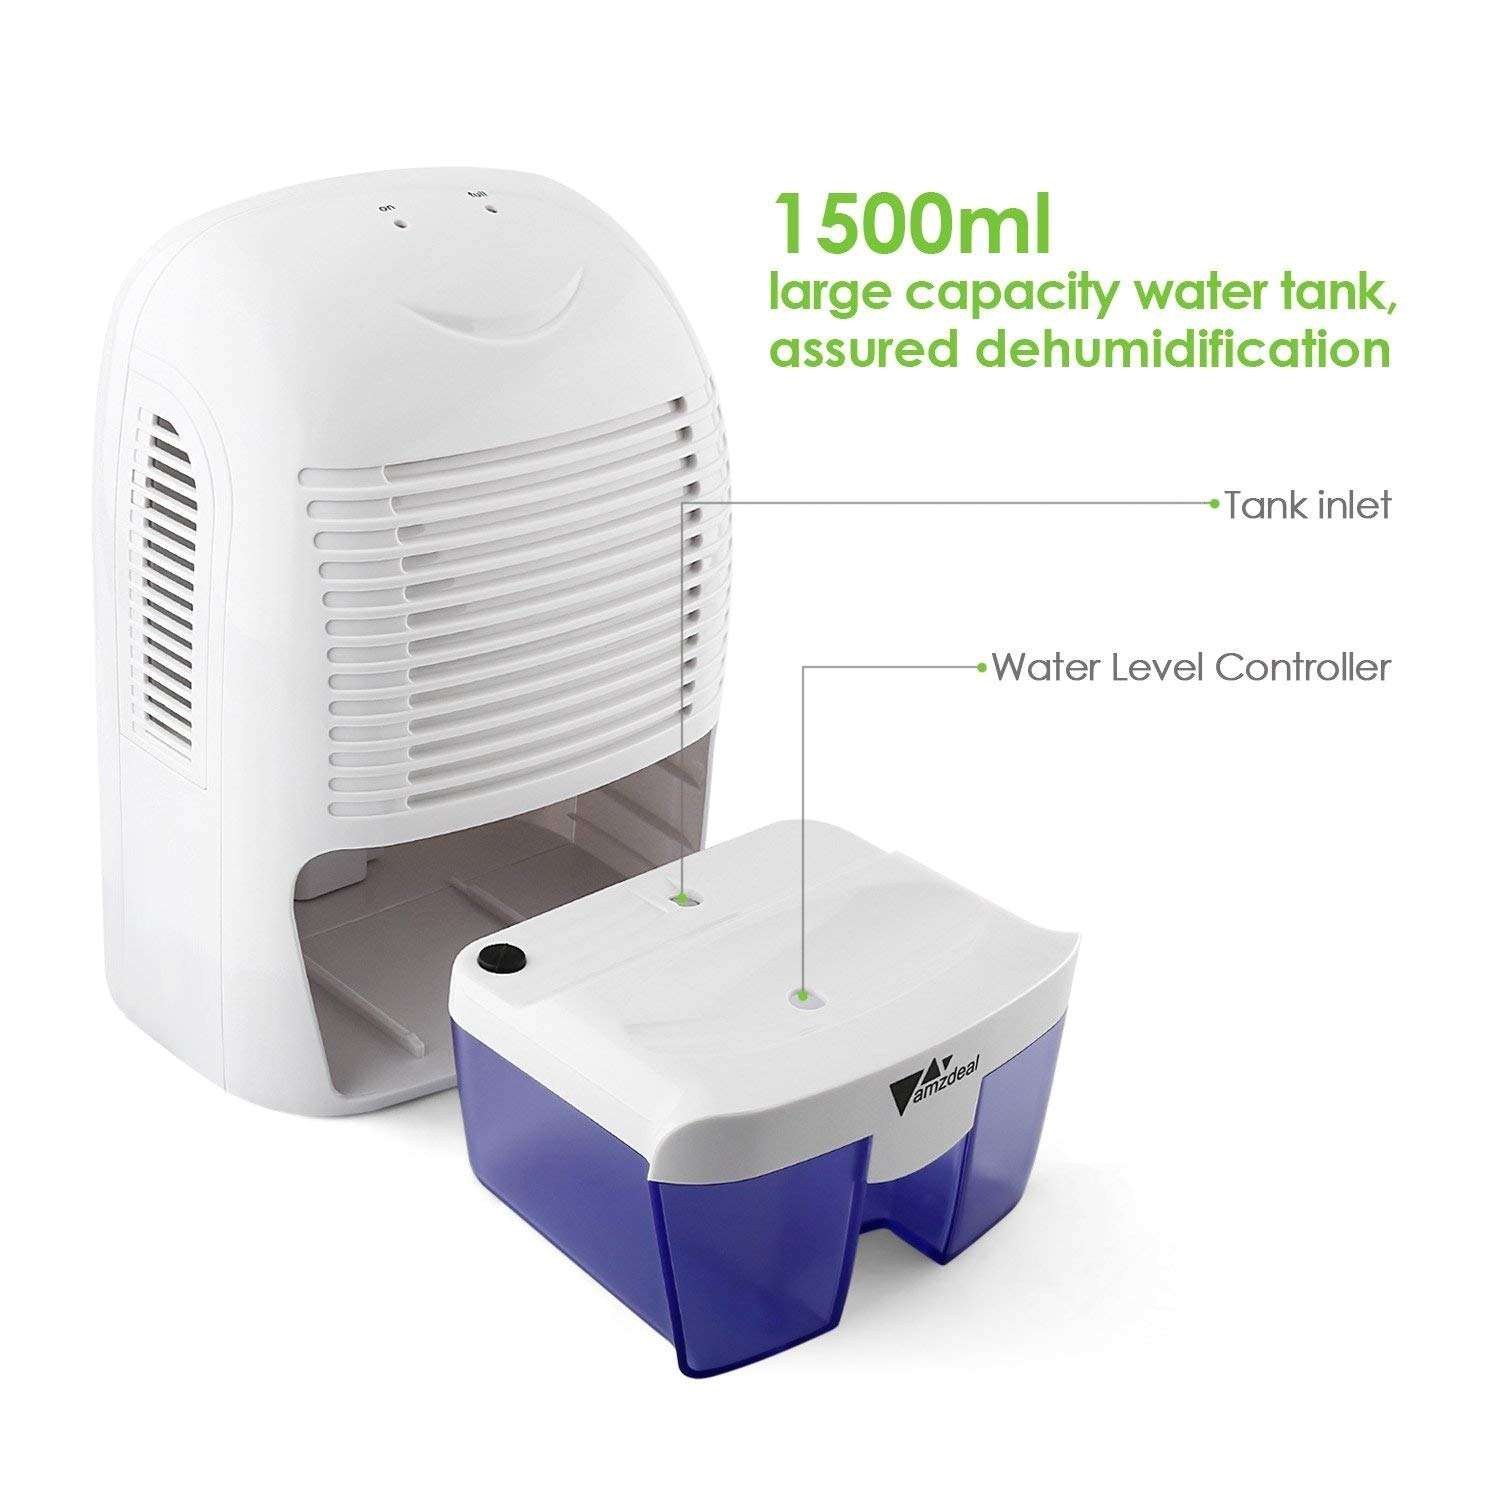 amazon com amzdeal dehumidifier for 323 sq ft home basement bedroom small dehumidifier with 50 oz water tank auto off to remove damp and mold